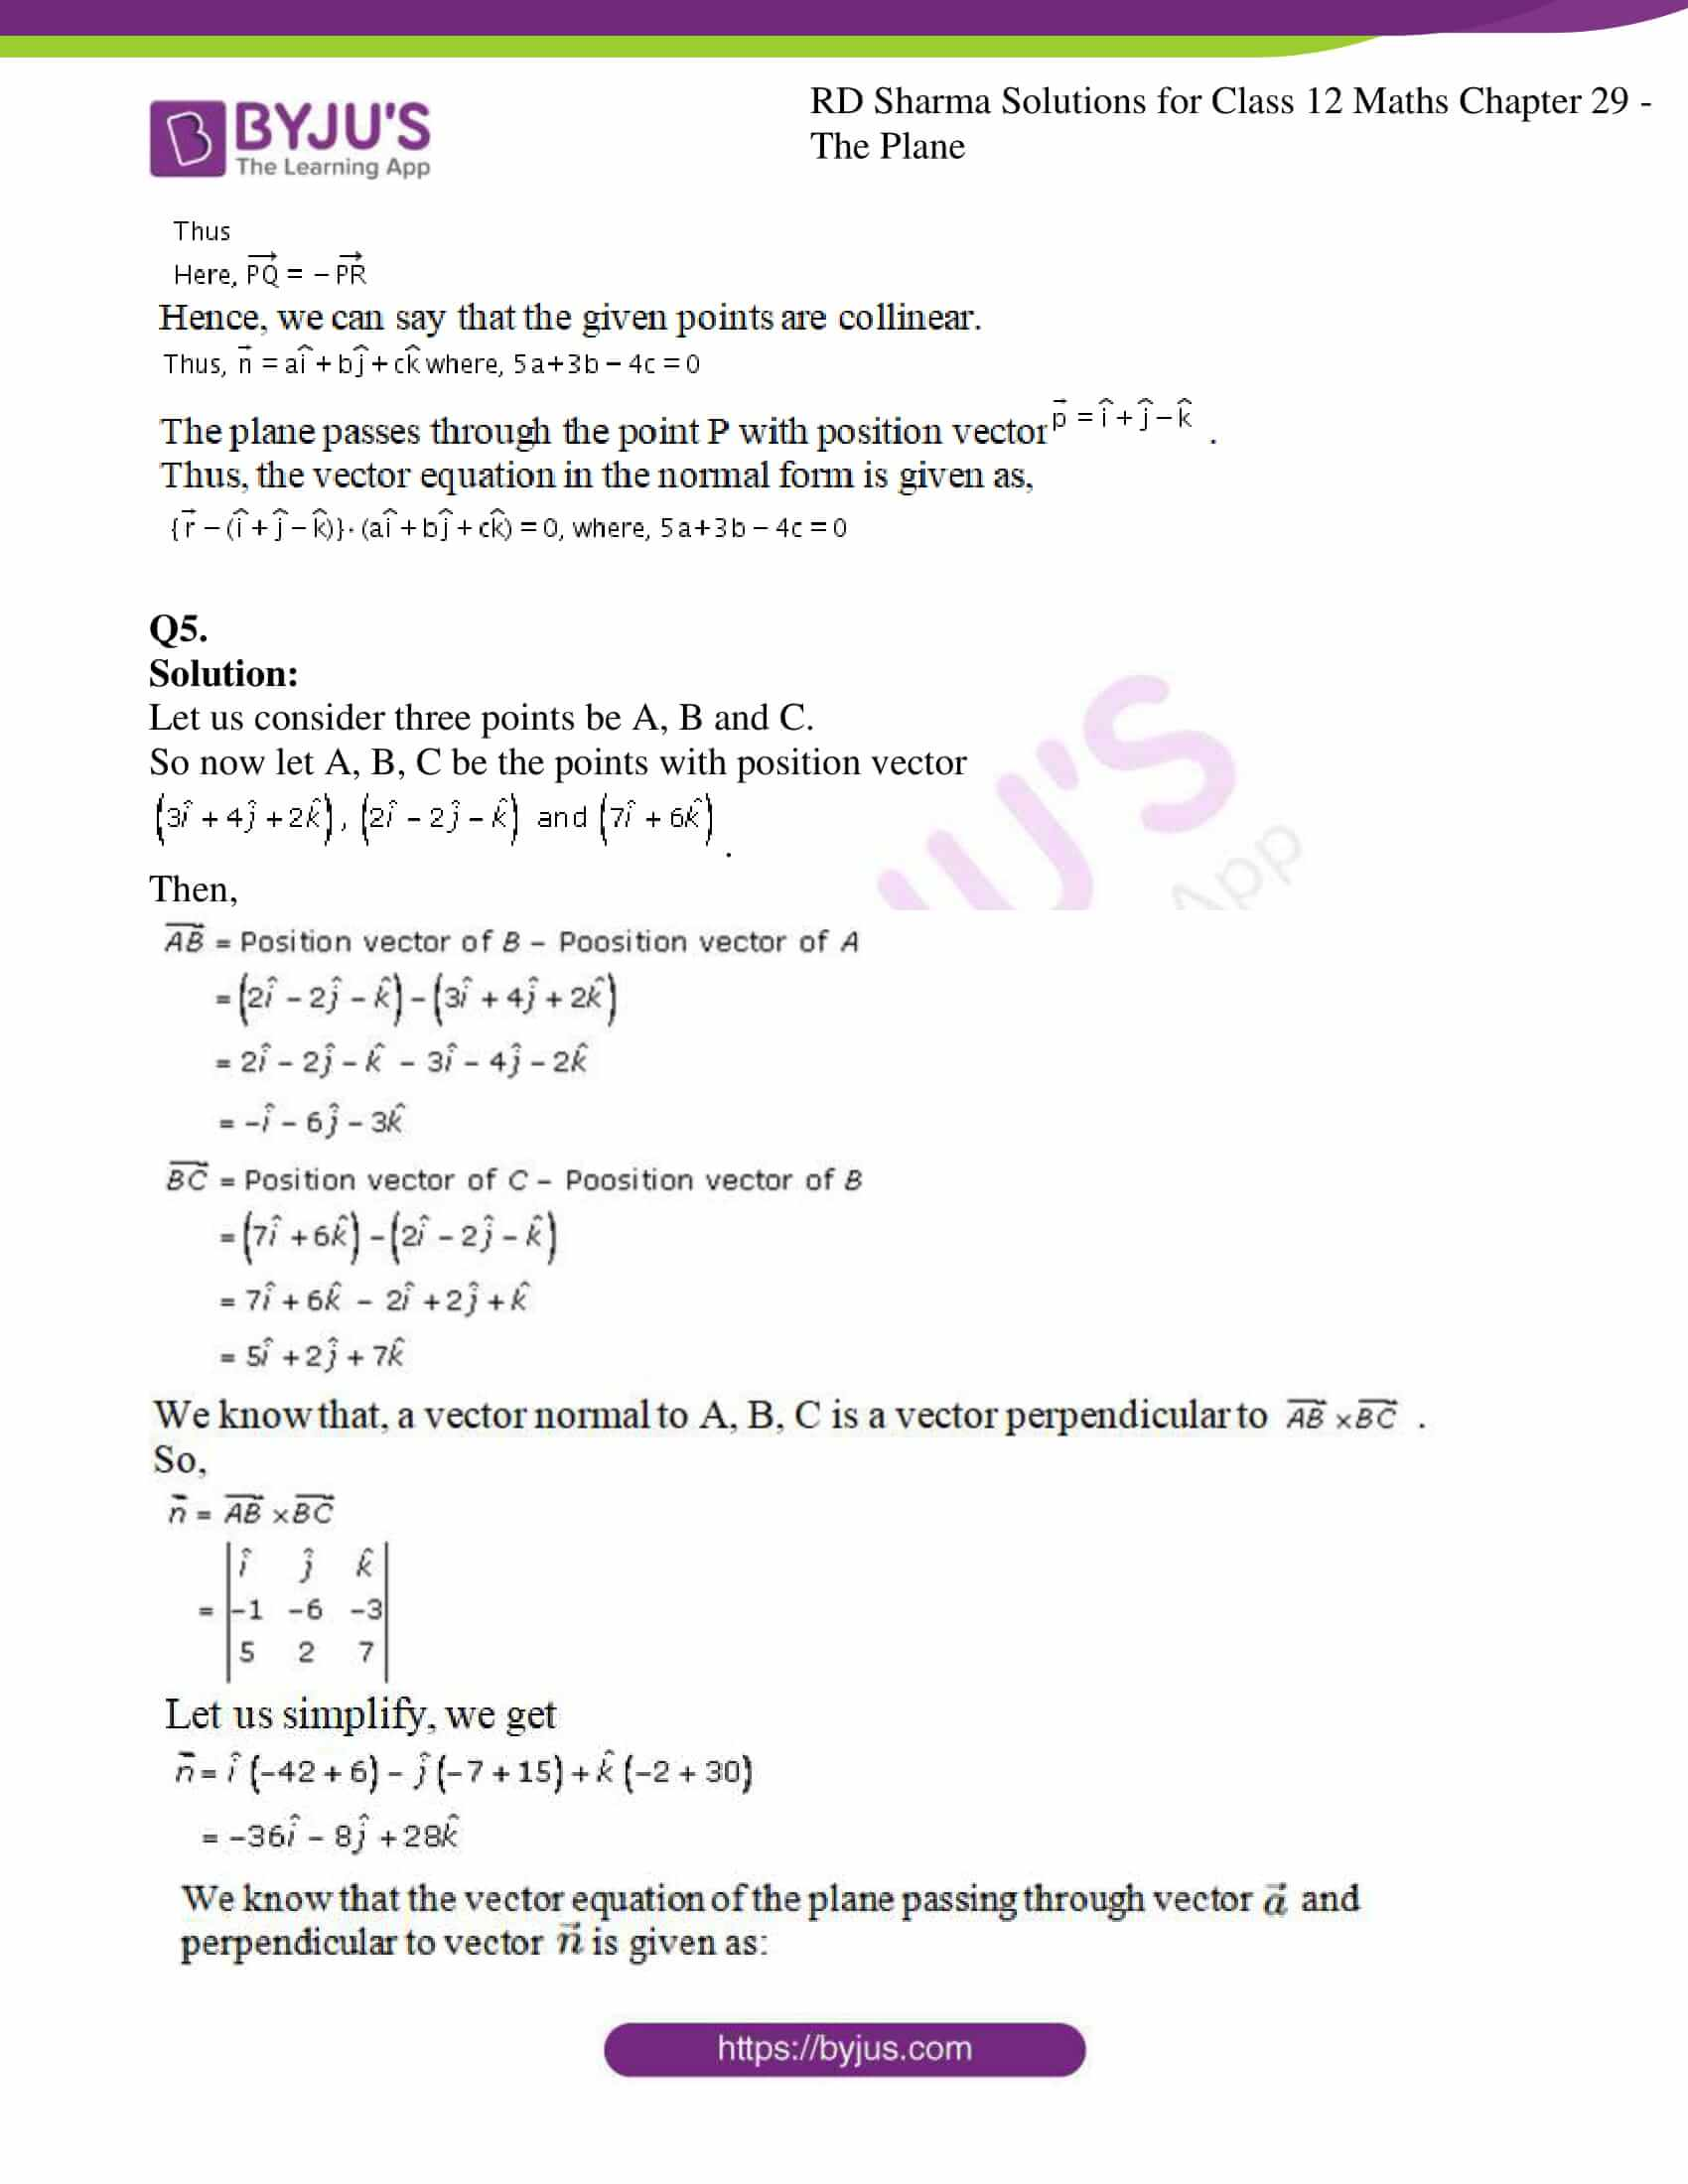 rd sharma solutions for class 12 maths chapter 29 ex 5 4